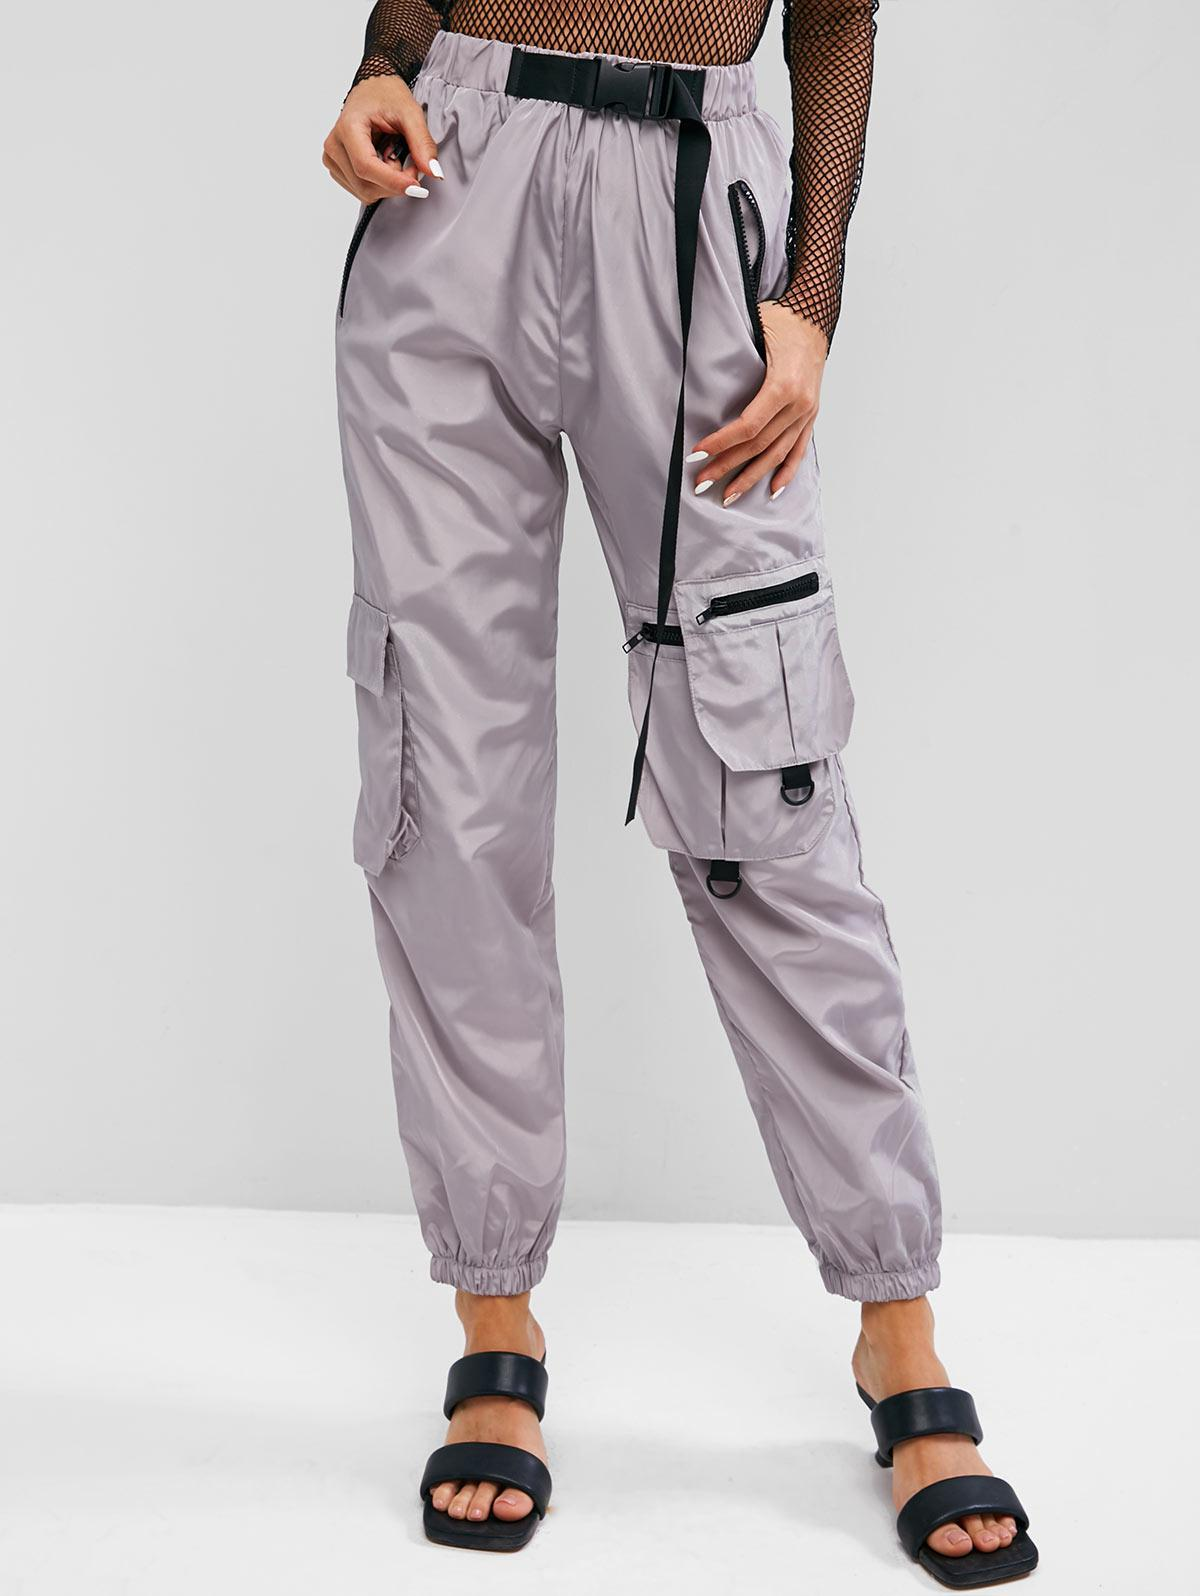 Zippered Push-buckled Straps Cargo Pants